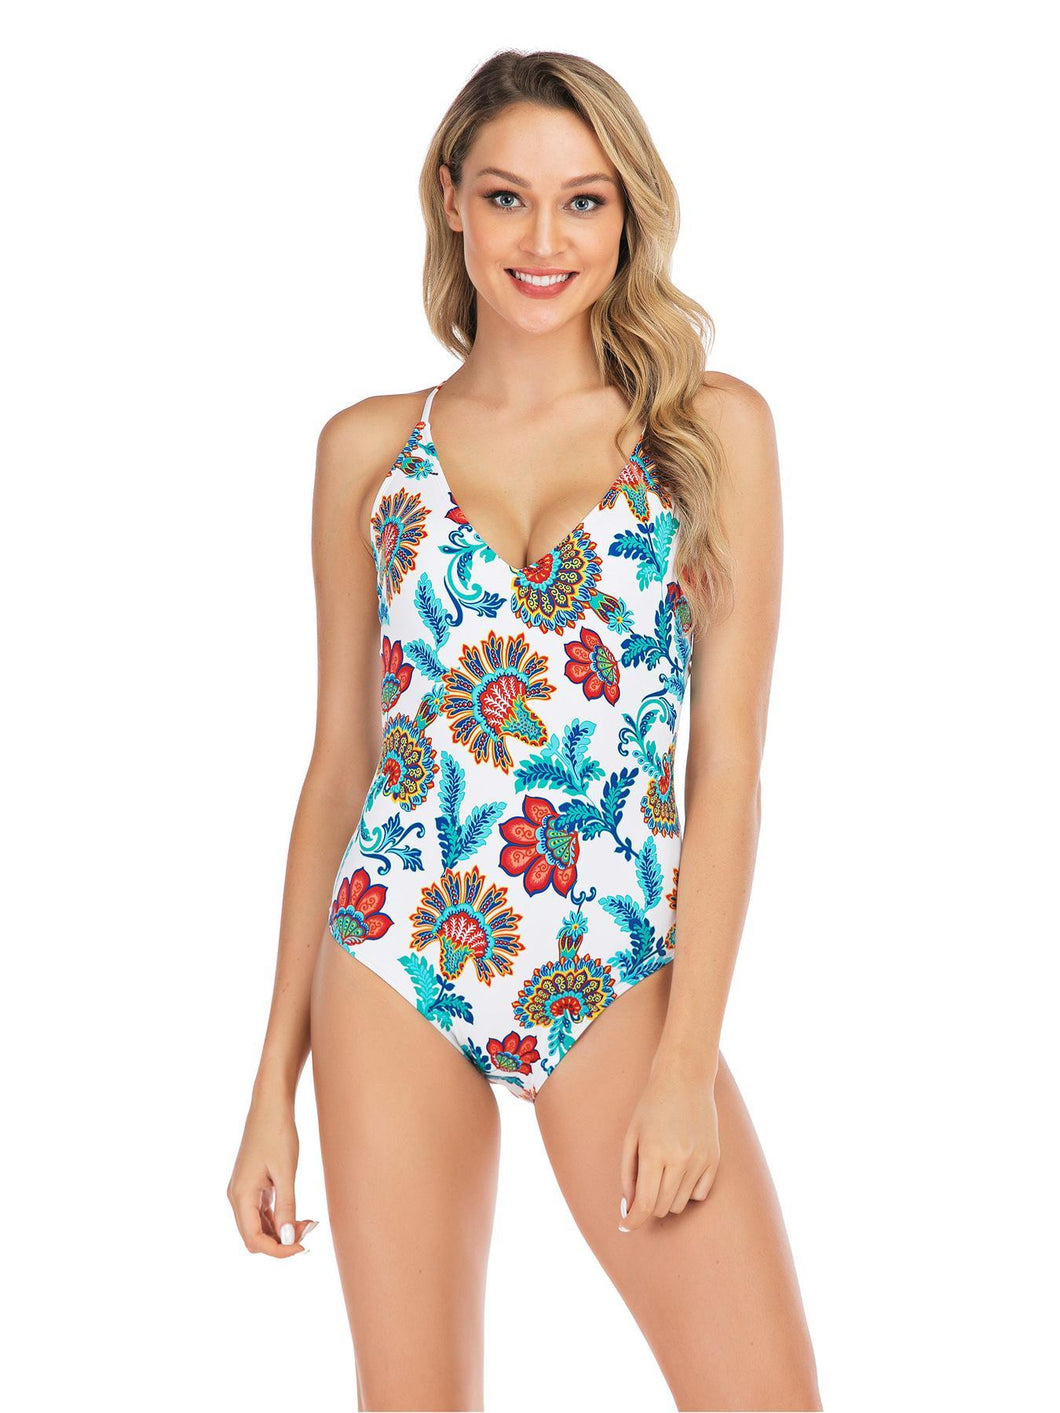 Women's Peacock Printed One Piece Swimsuit